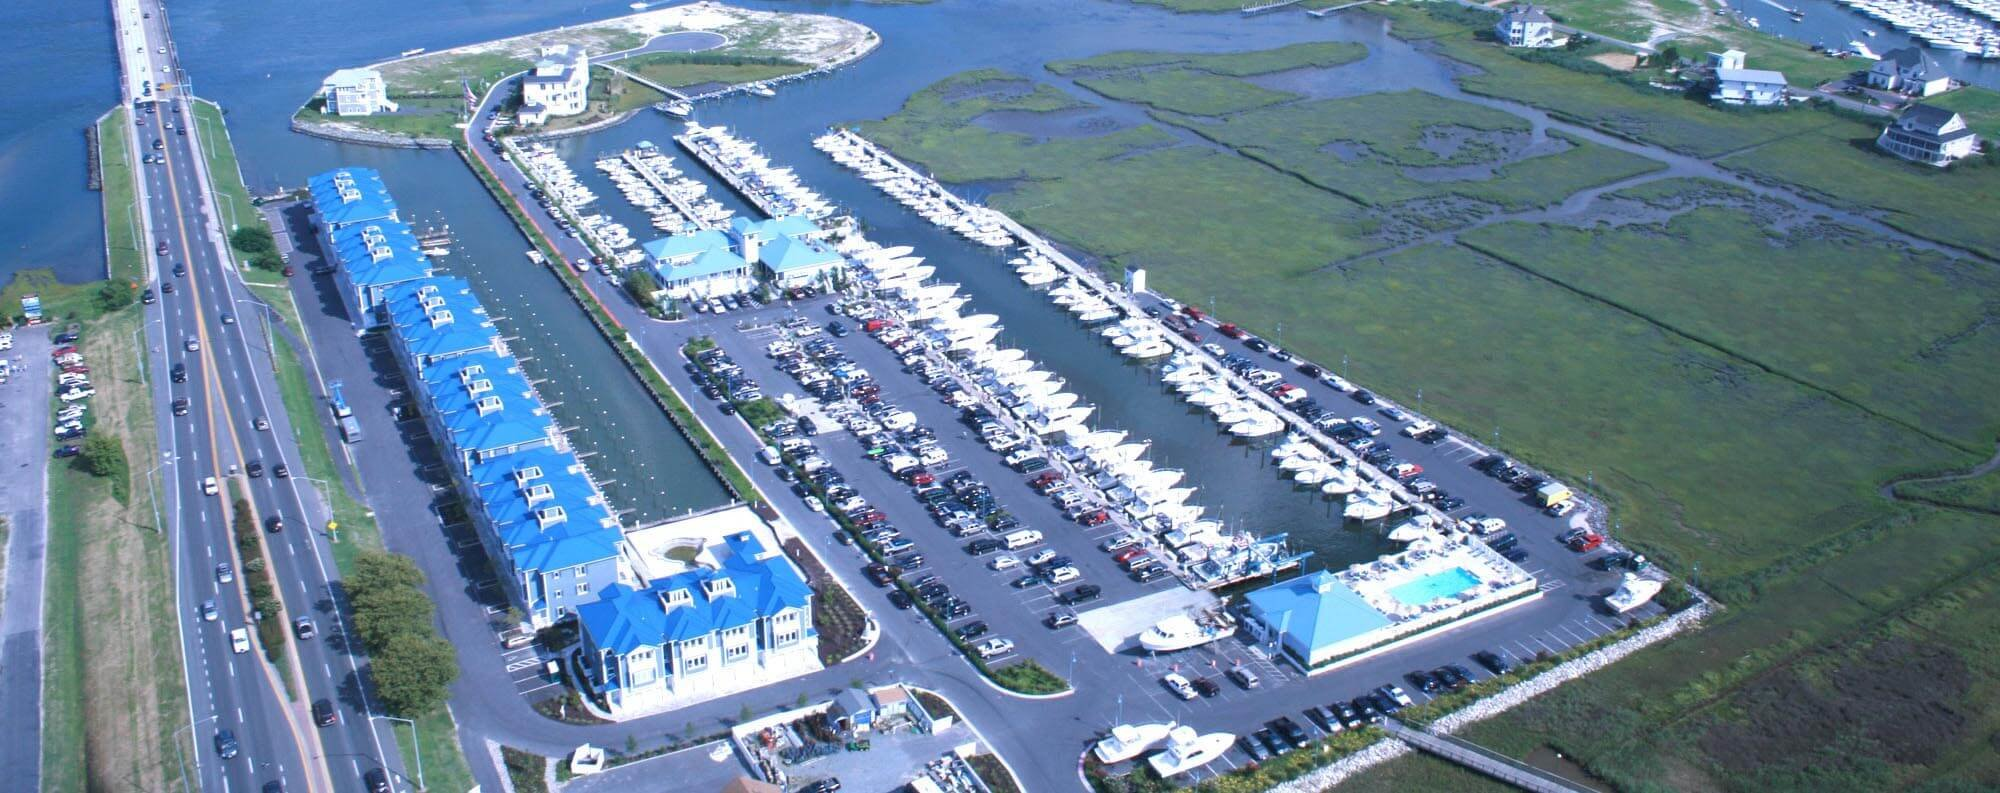 An overhead view of the marina next to the highway